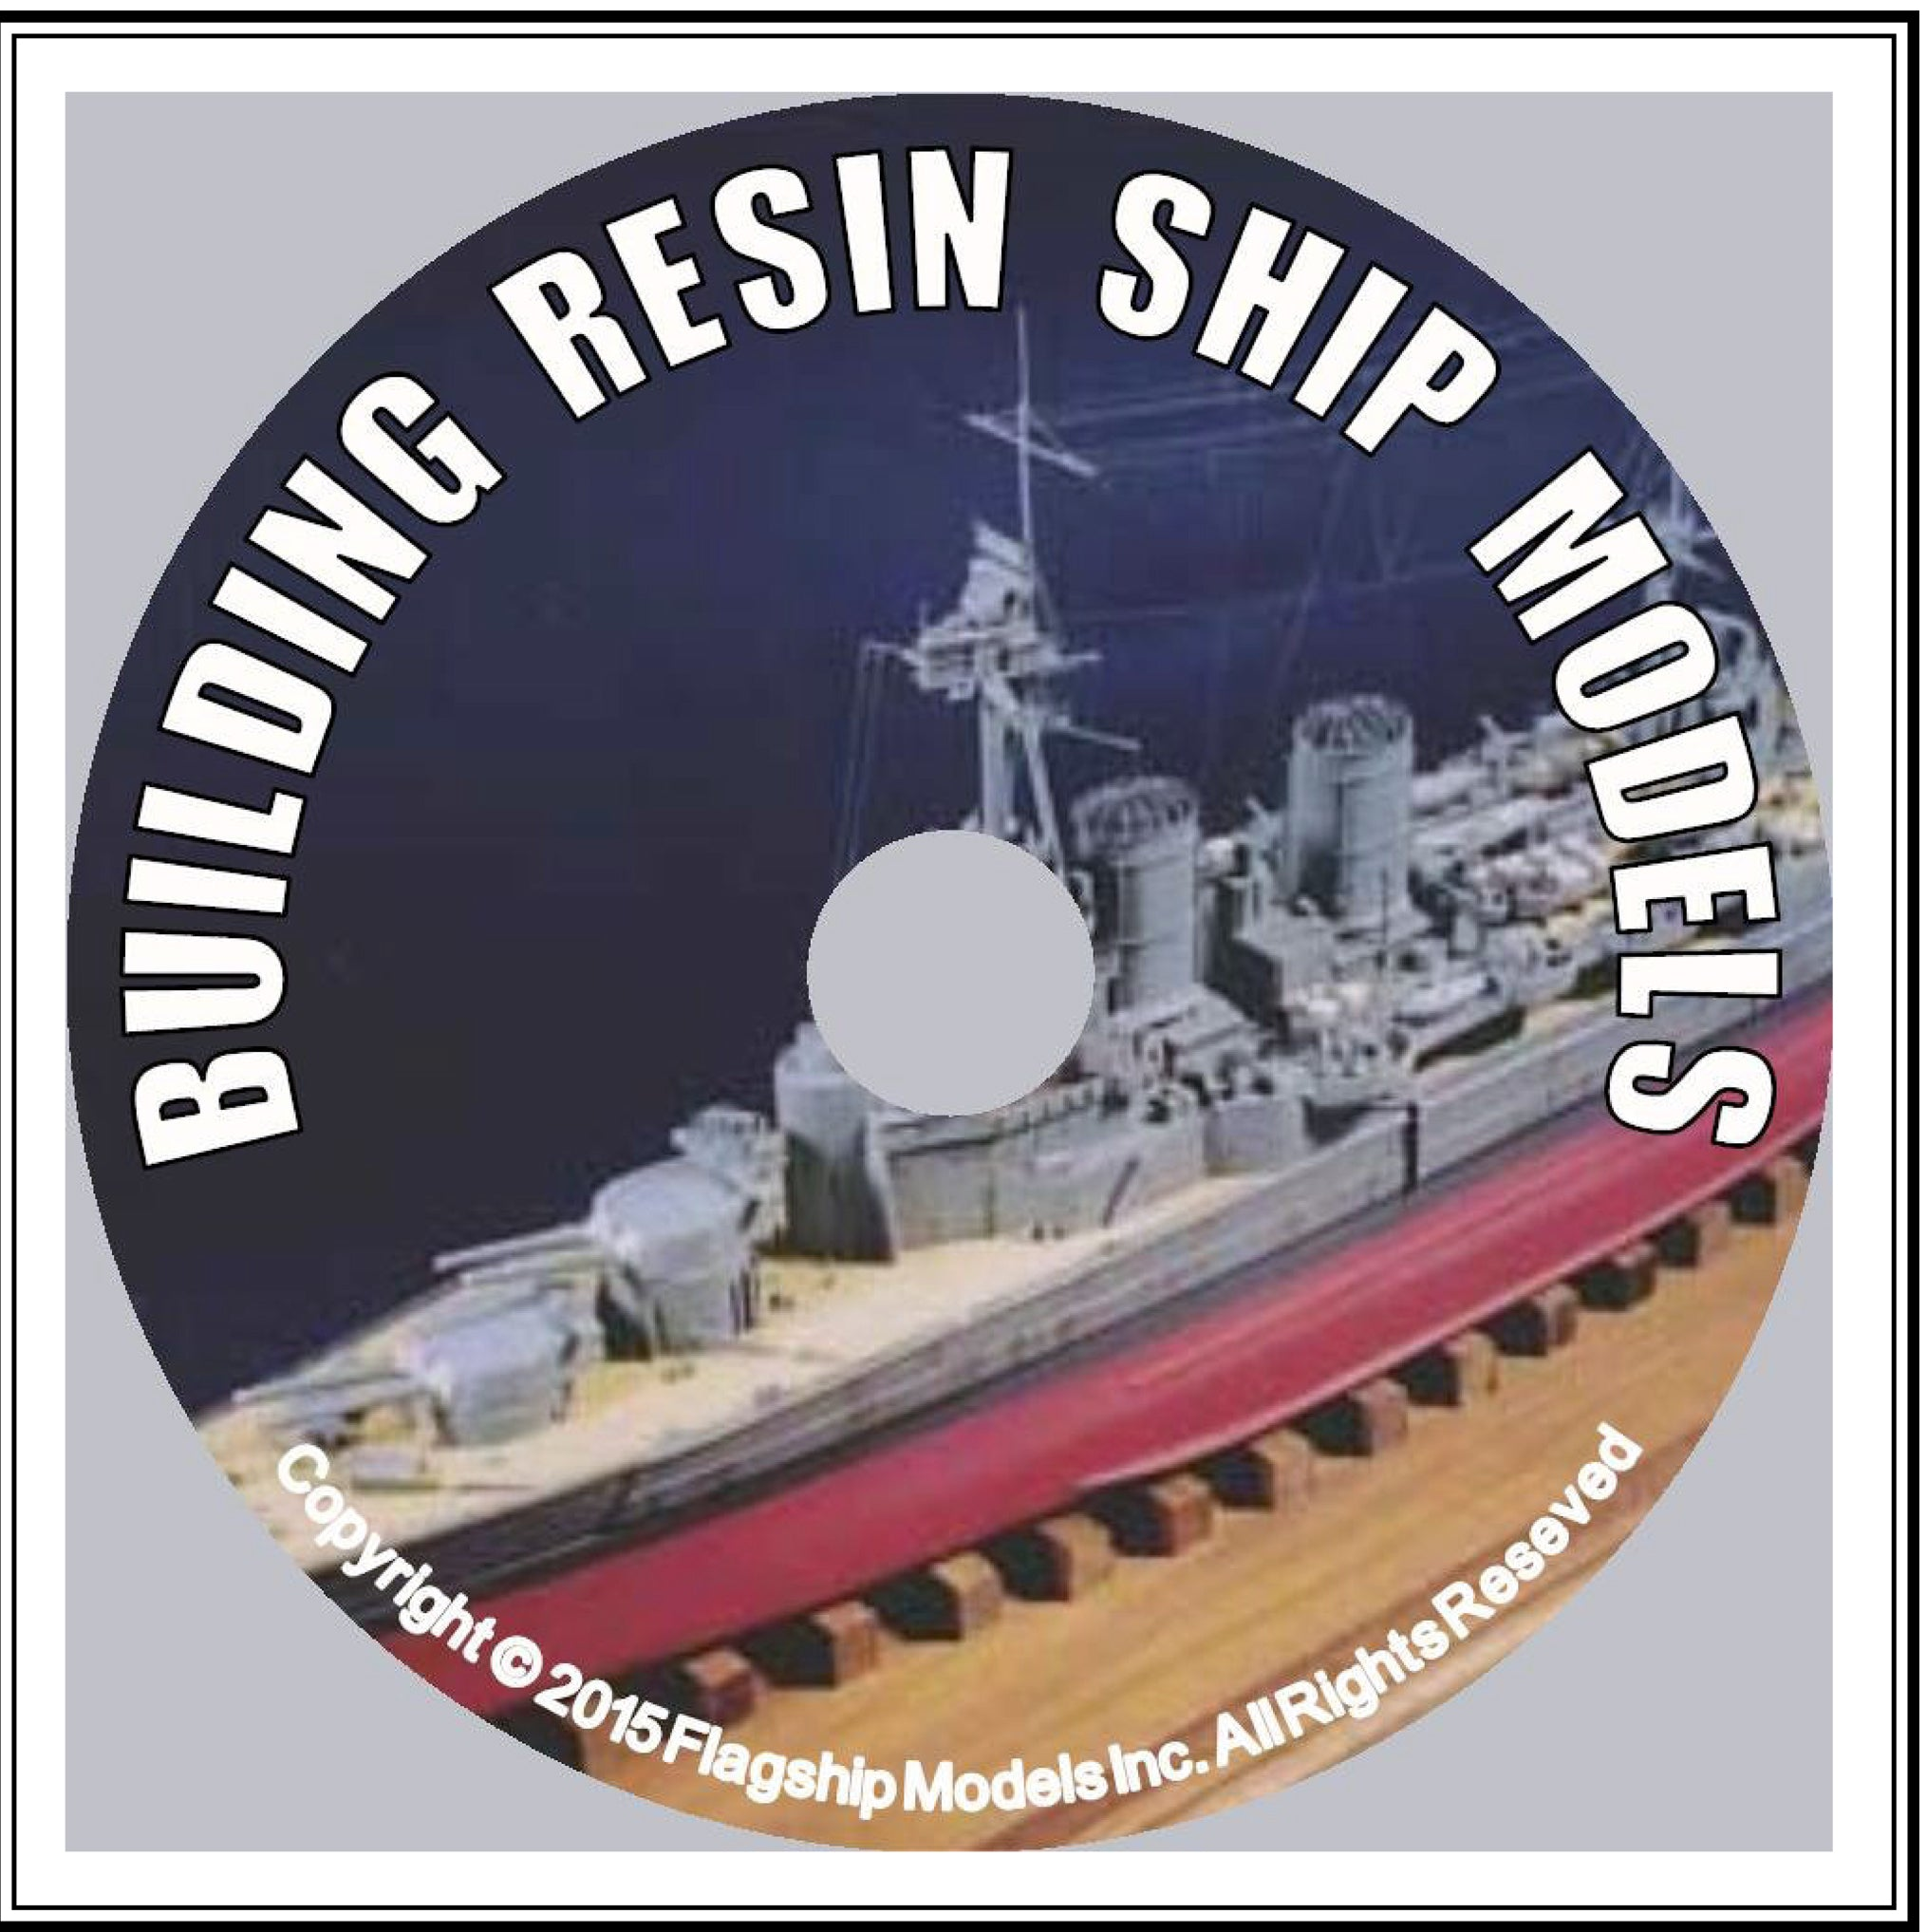 HOW TO CD: BUILDING RESIN SHIPS by Rusty White (6 pages)